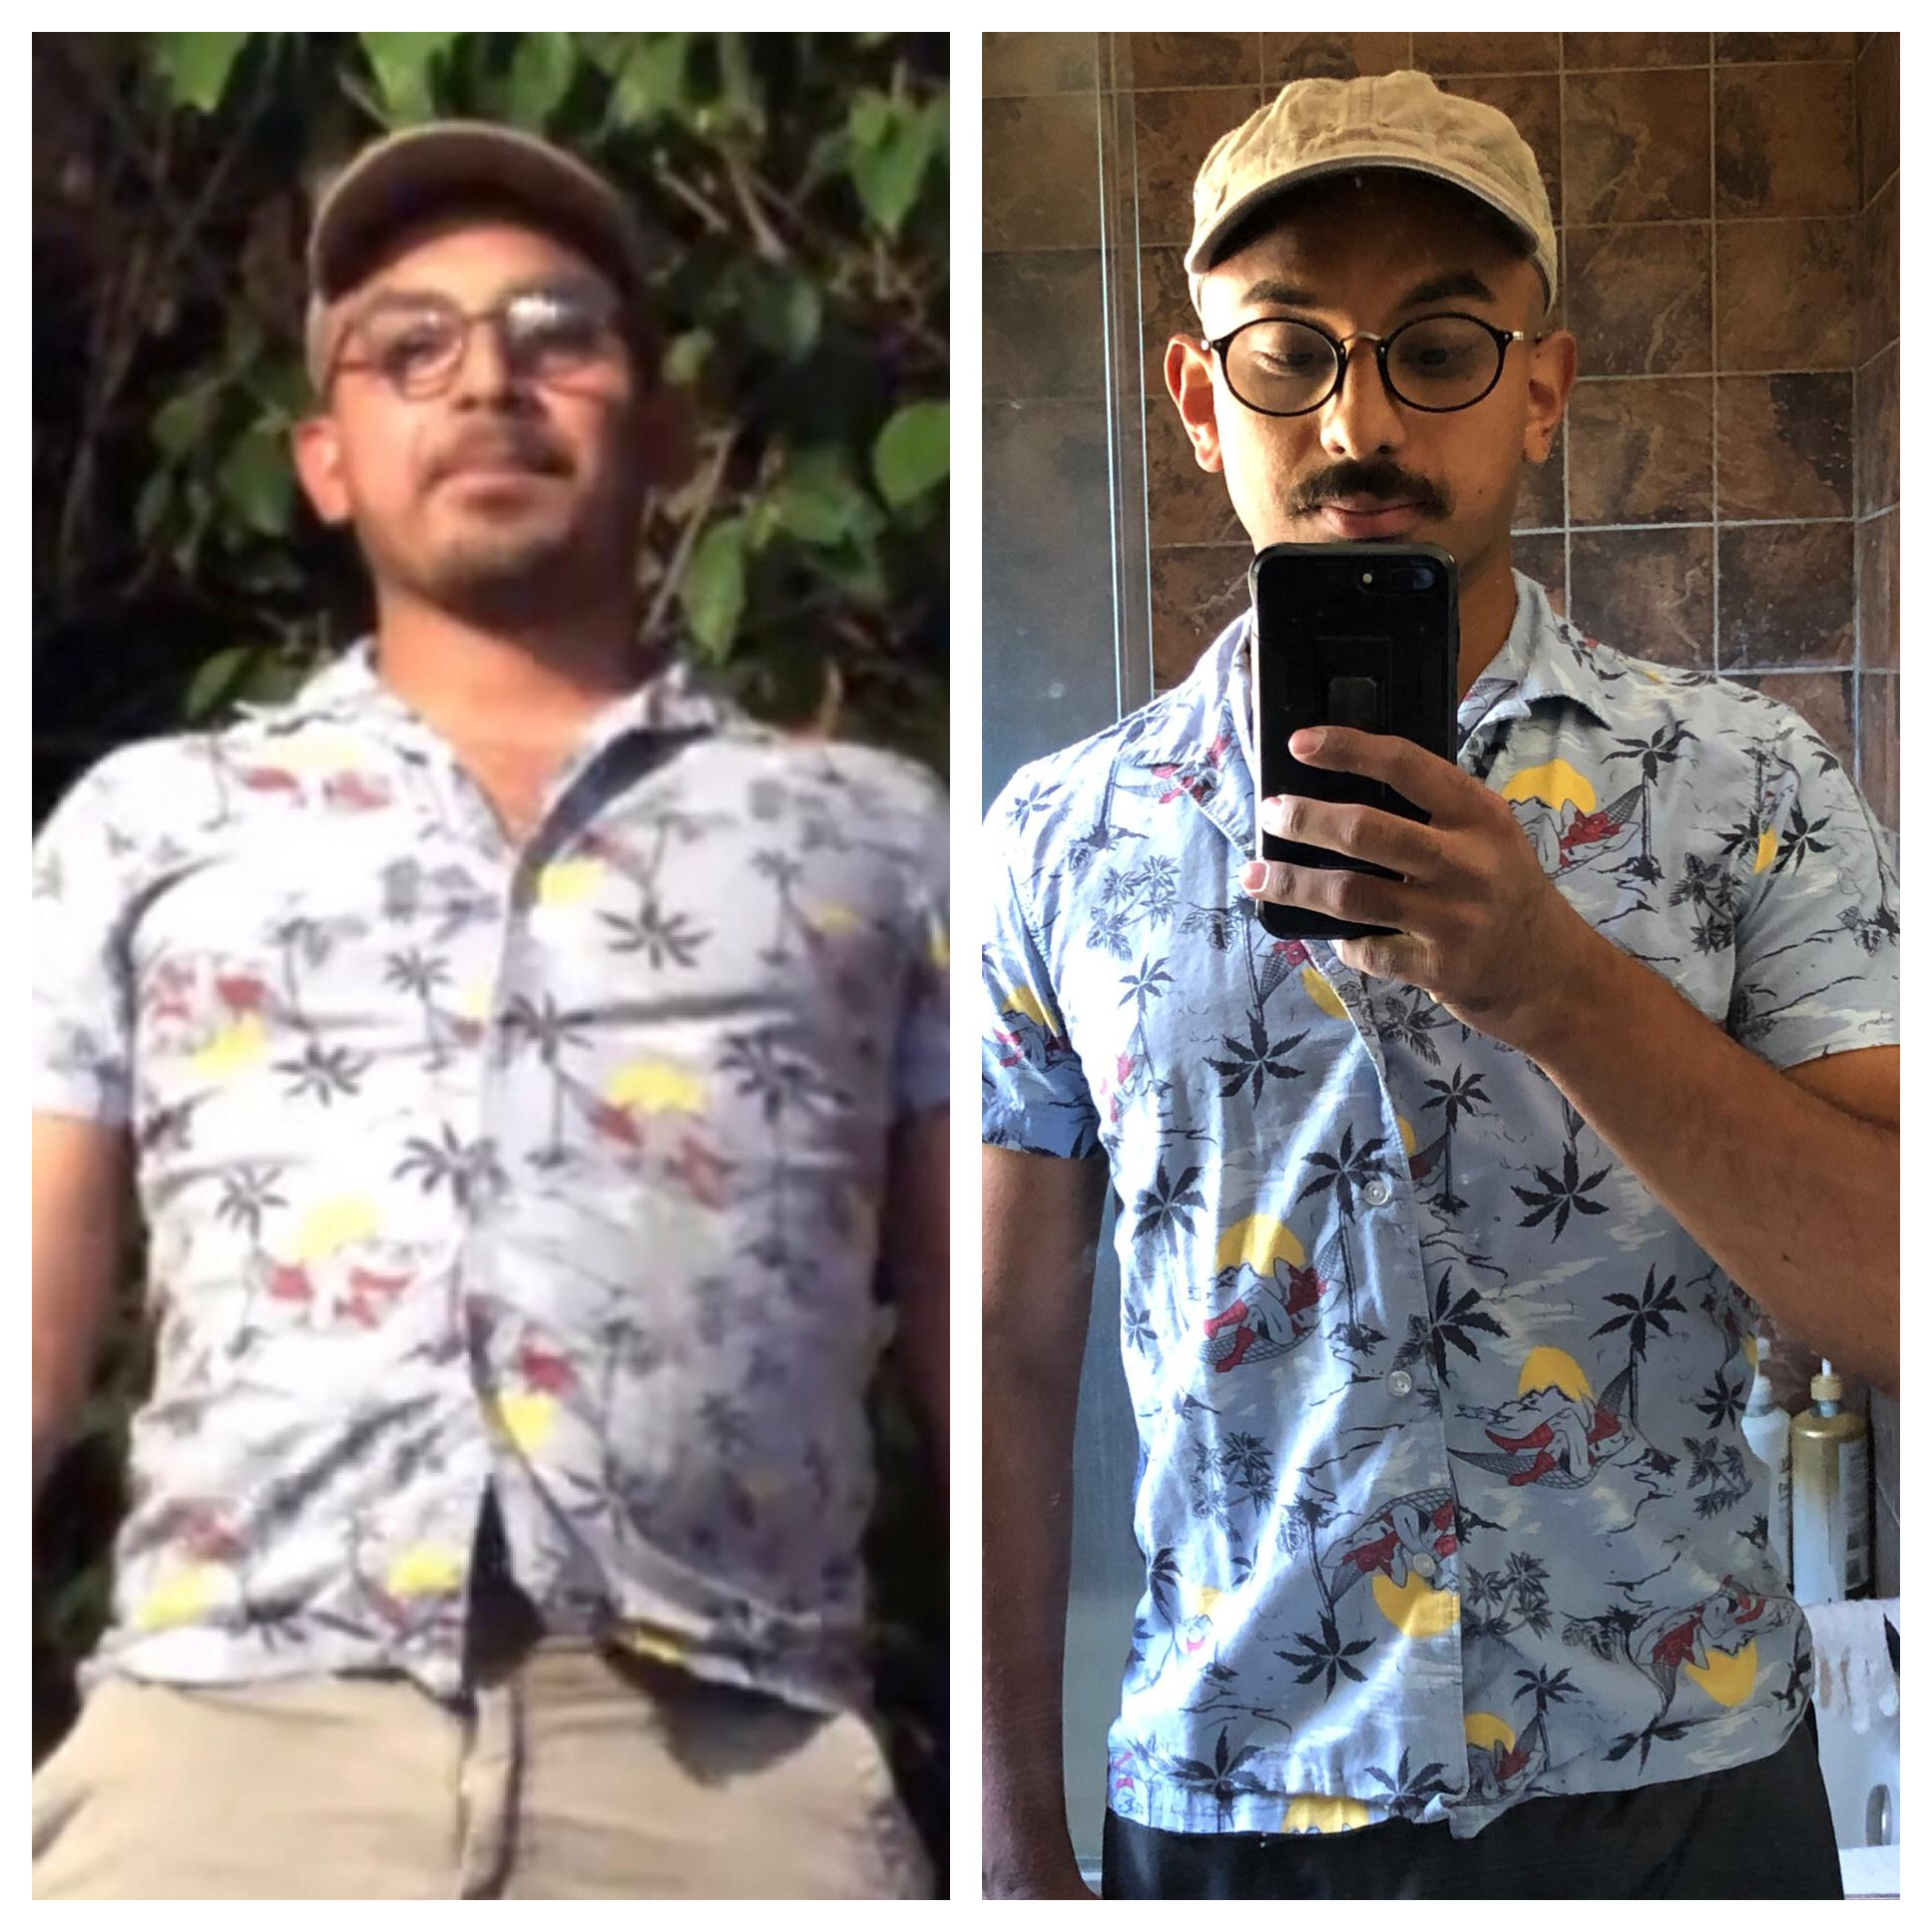 5'8 Male 25 lbs Weight Loss Before and After 186 lbs to 161 lbs